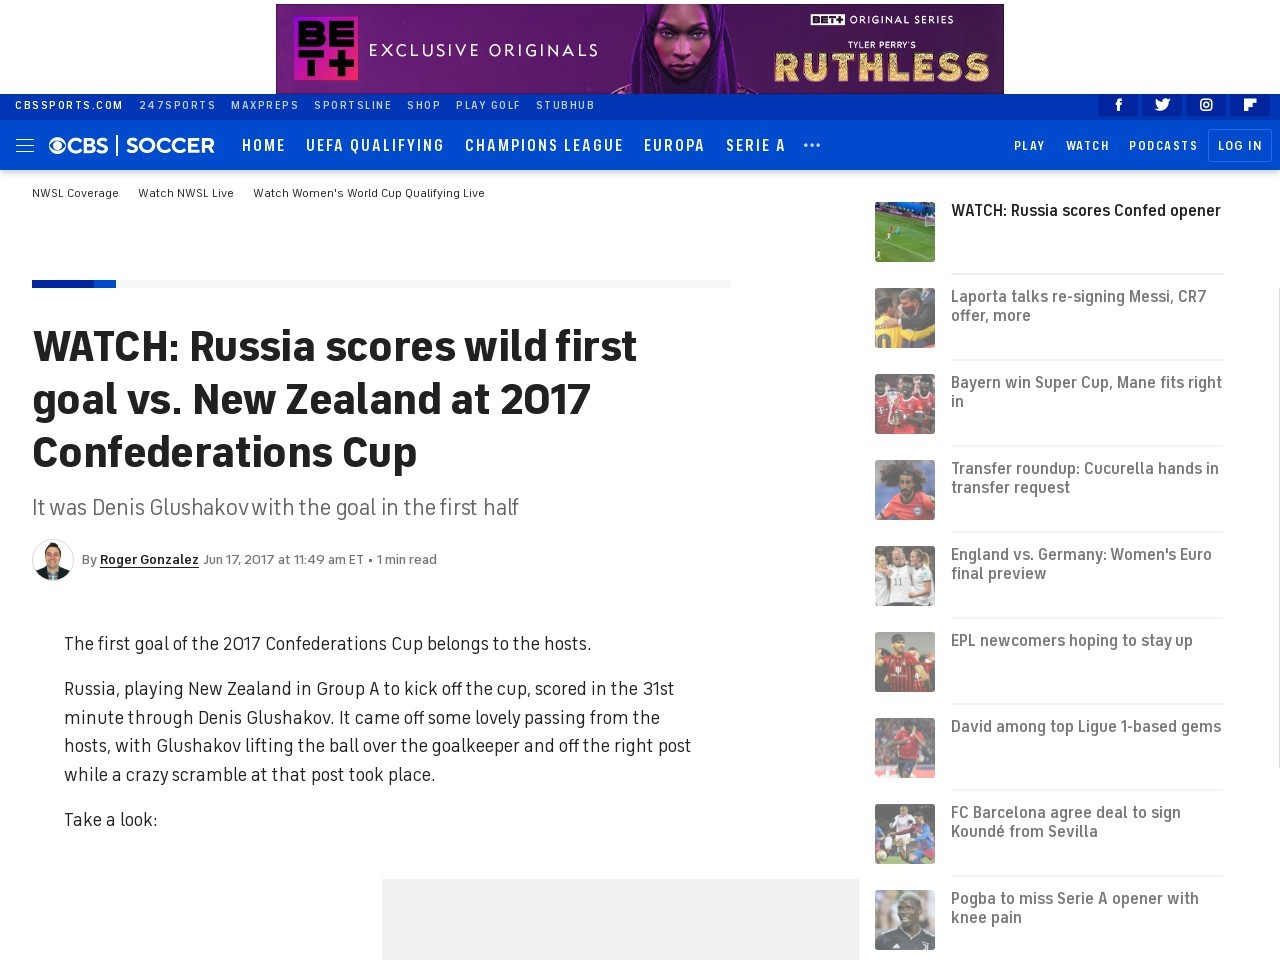 WATCH: Russia scores wild first goal vs. New Zealand at 2017 Confederations Cup